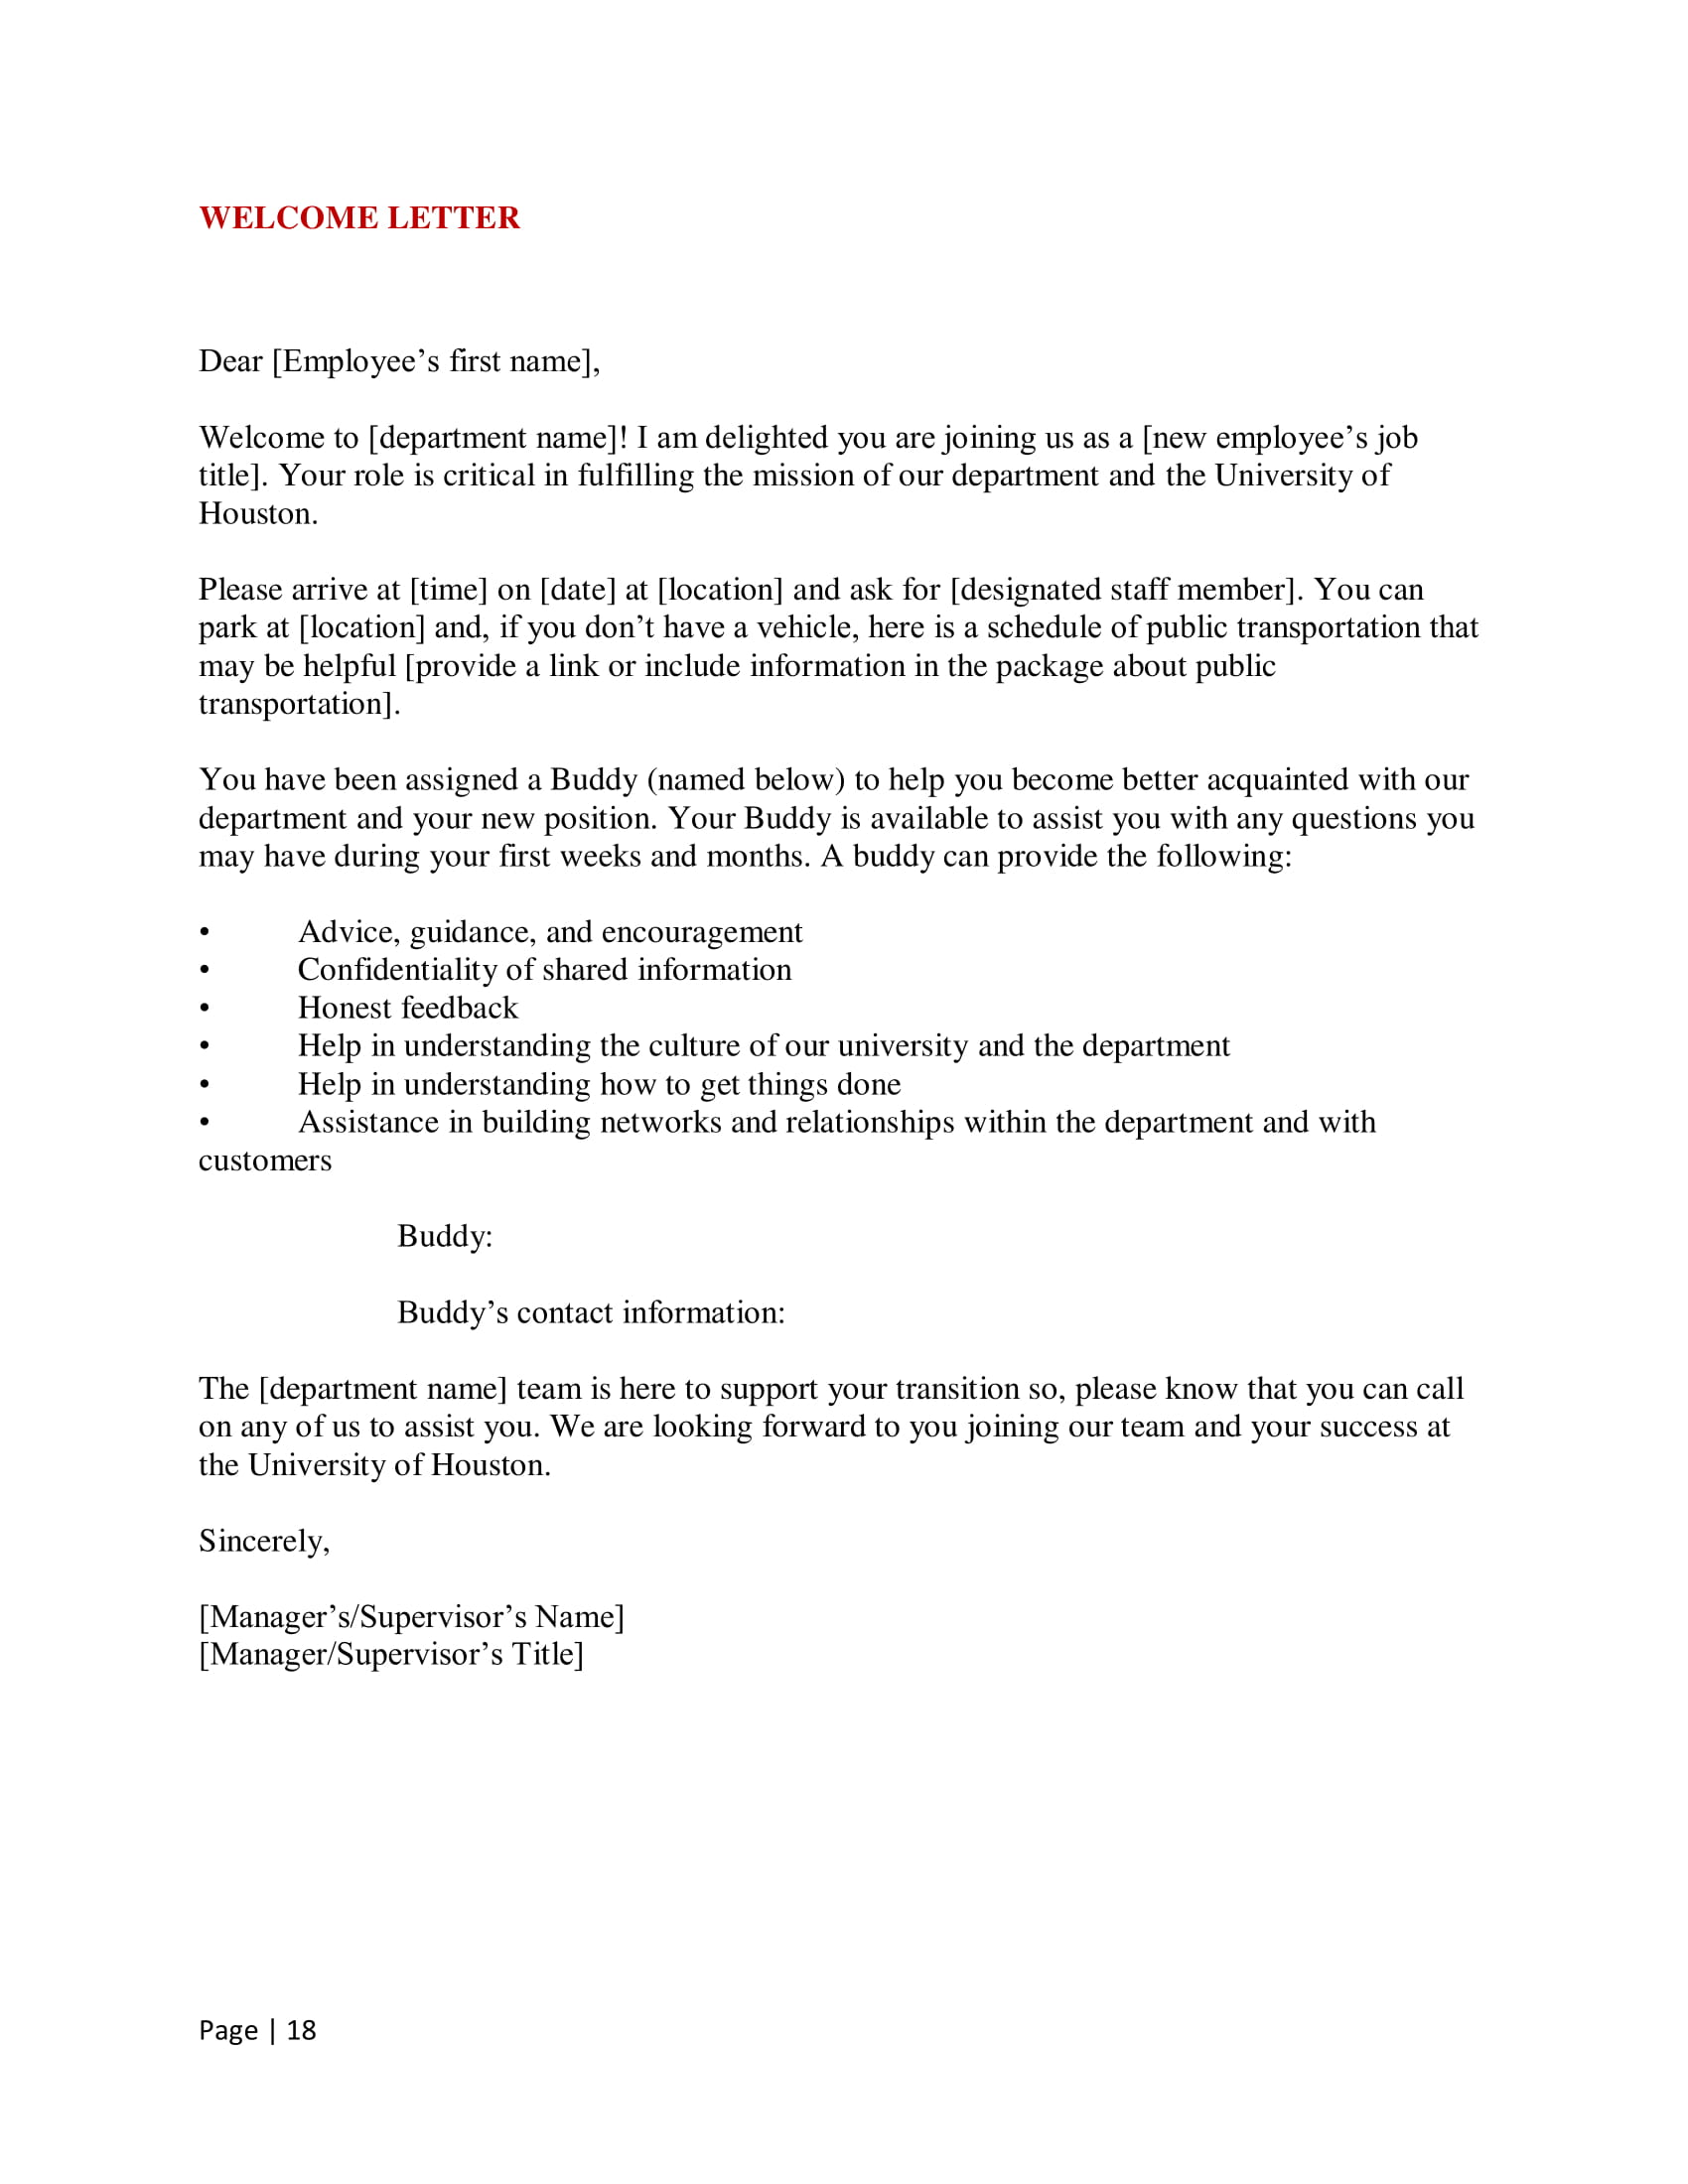 New Hire Welcome Letter  TeachengUs